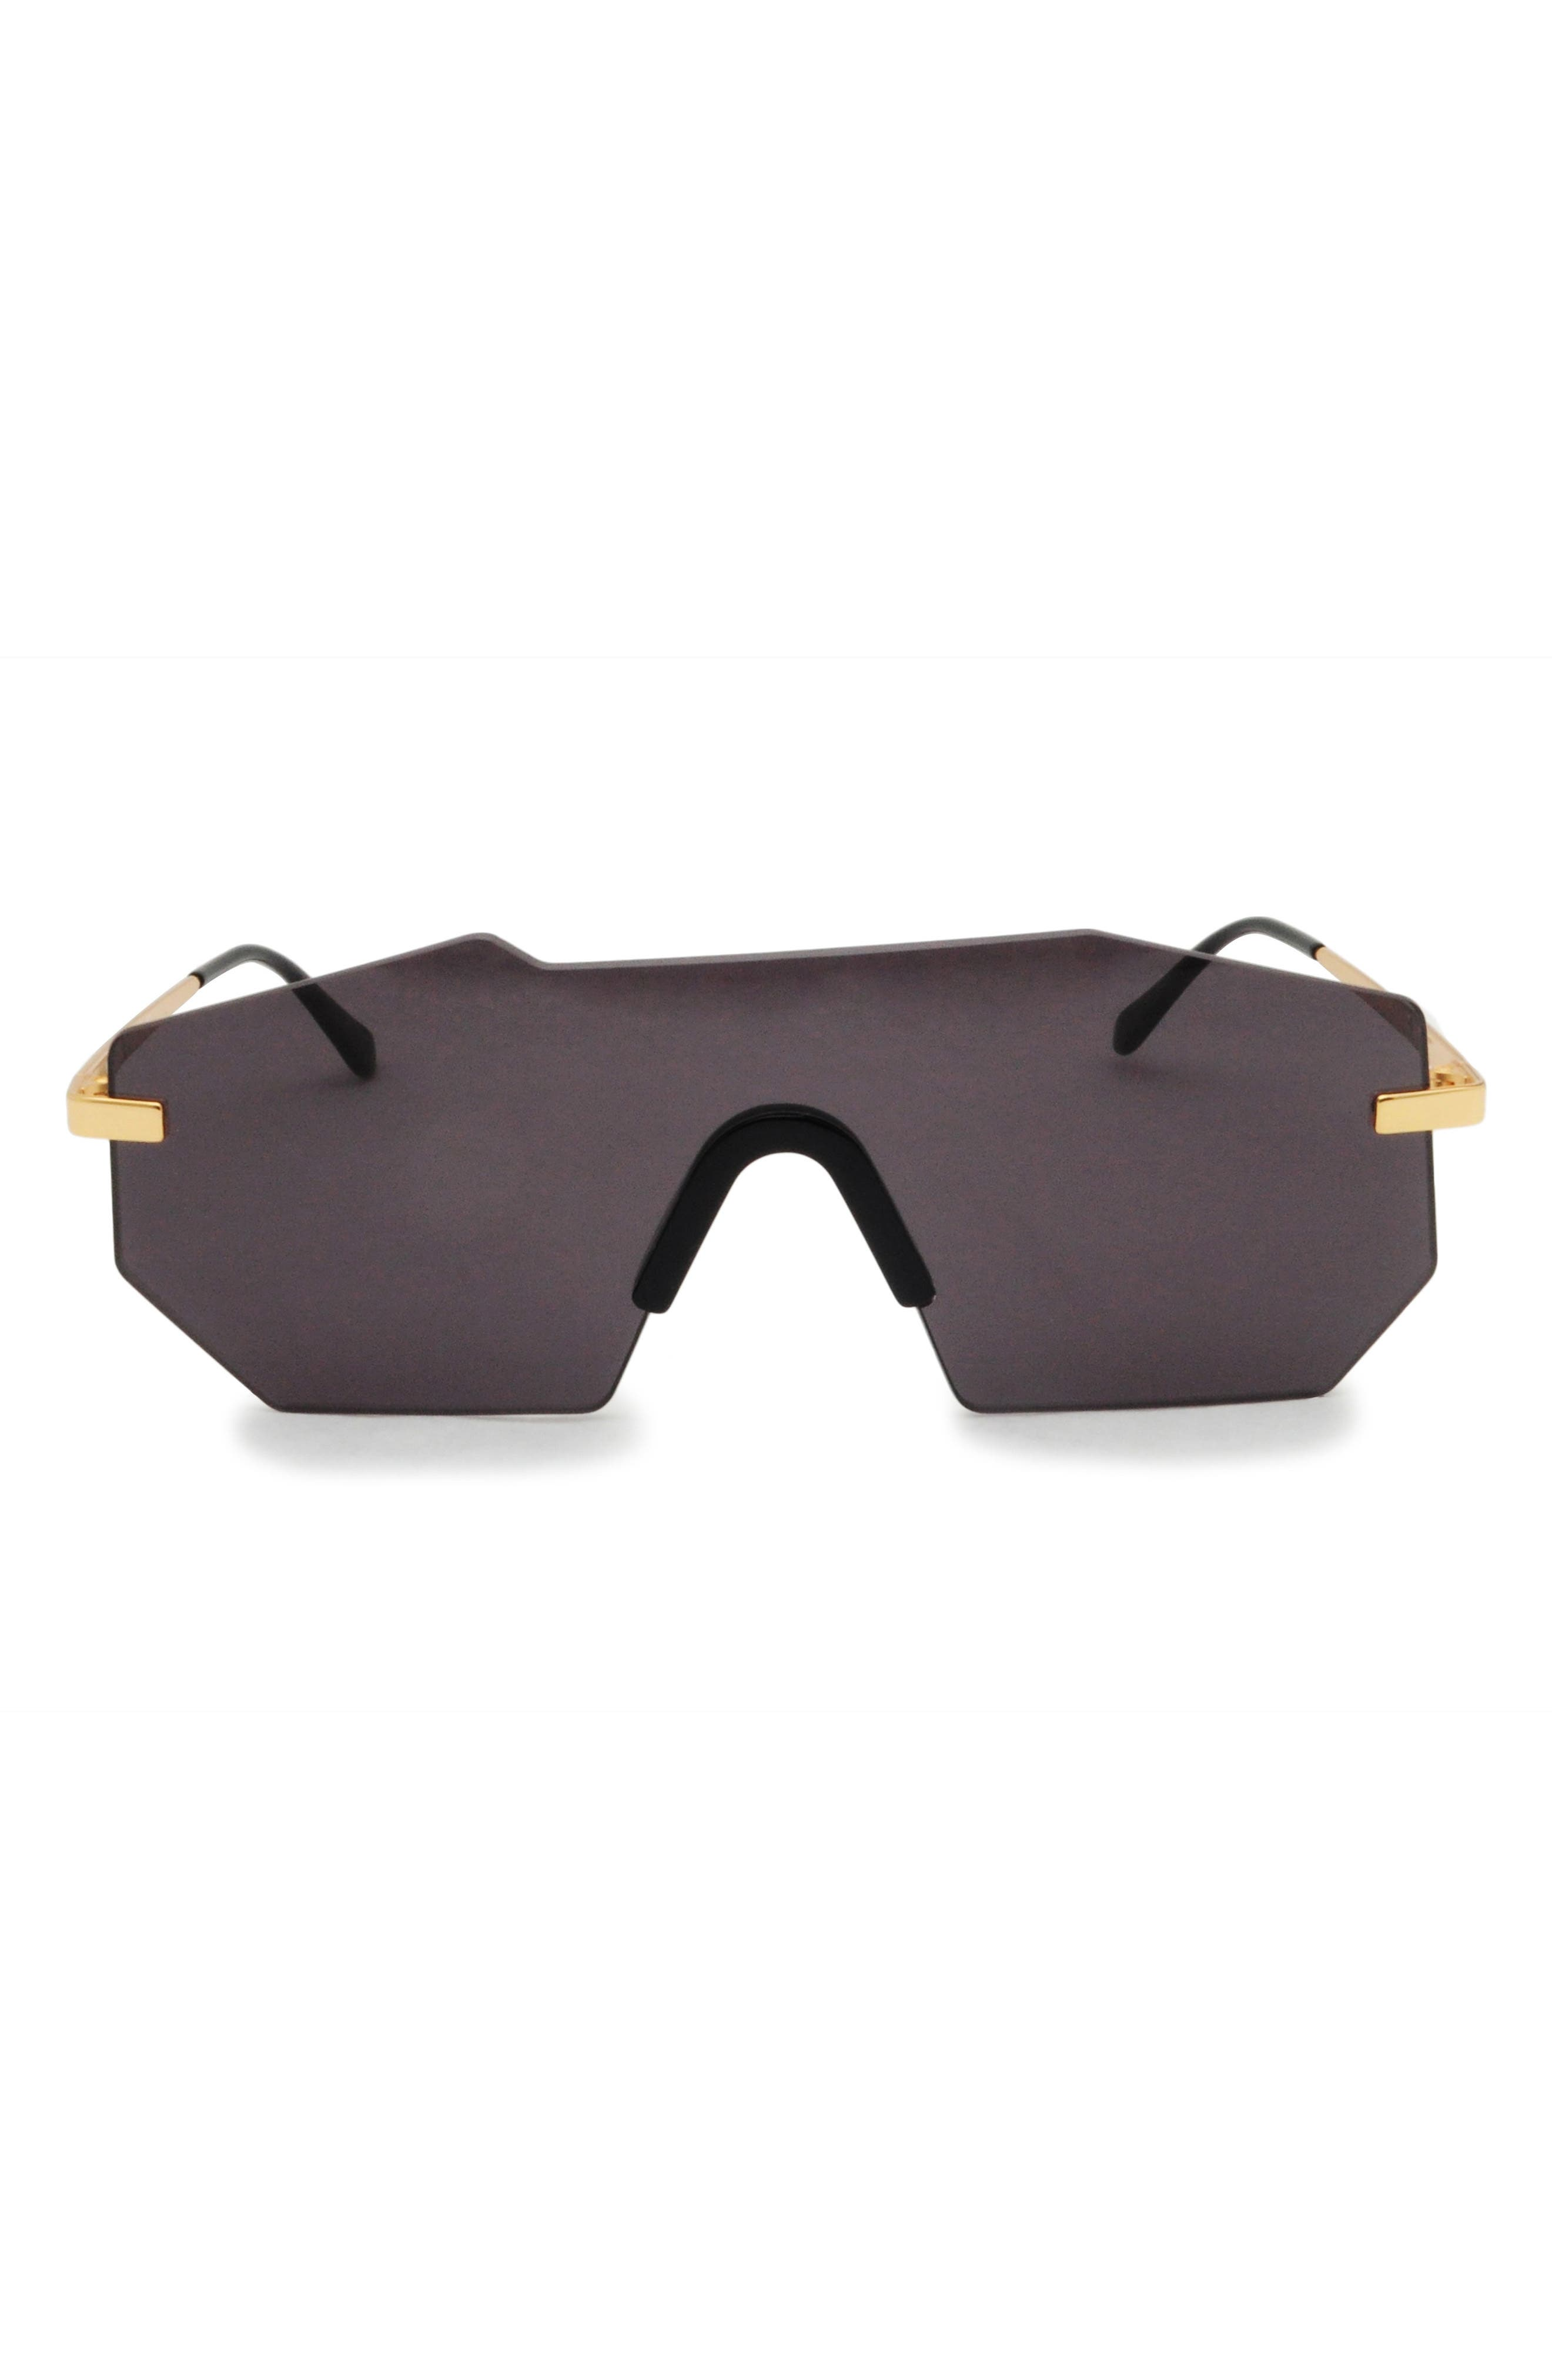 GLASSING GP1 132mm Shield Sunglasses